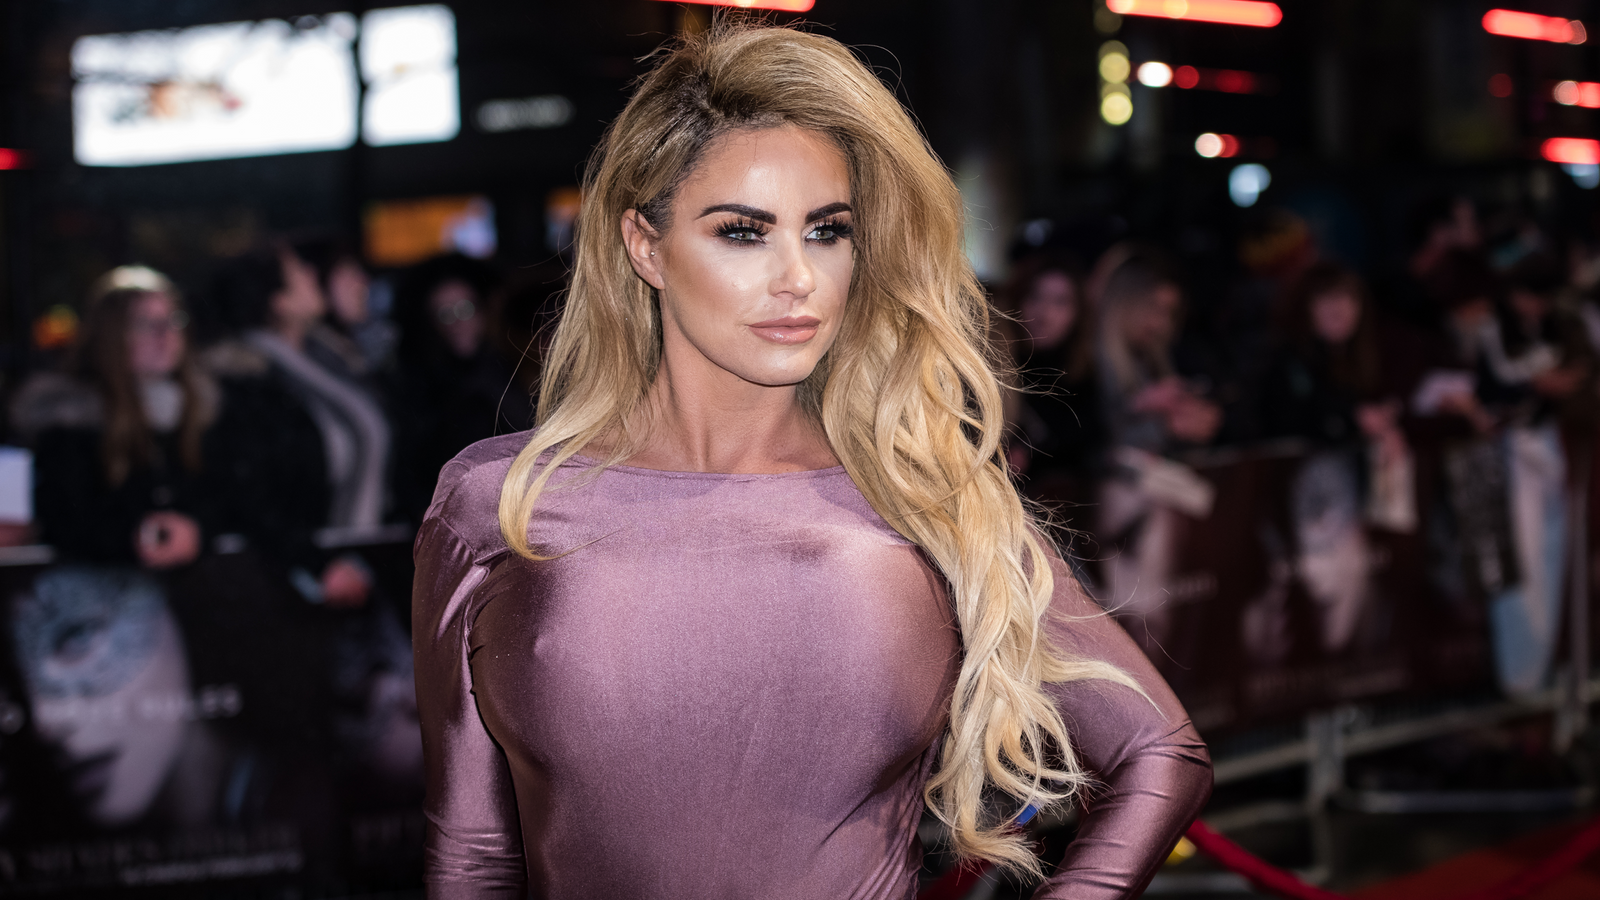 Katie Price defends trip to red-listed Turkey for cosmetic surgery, insisting she was safe